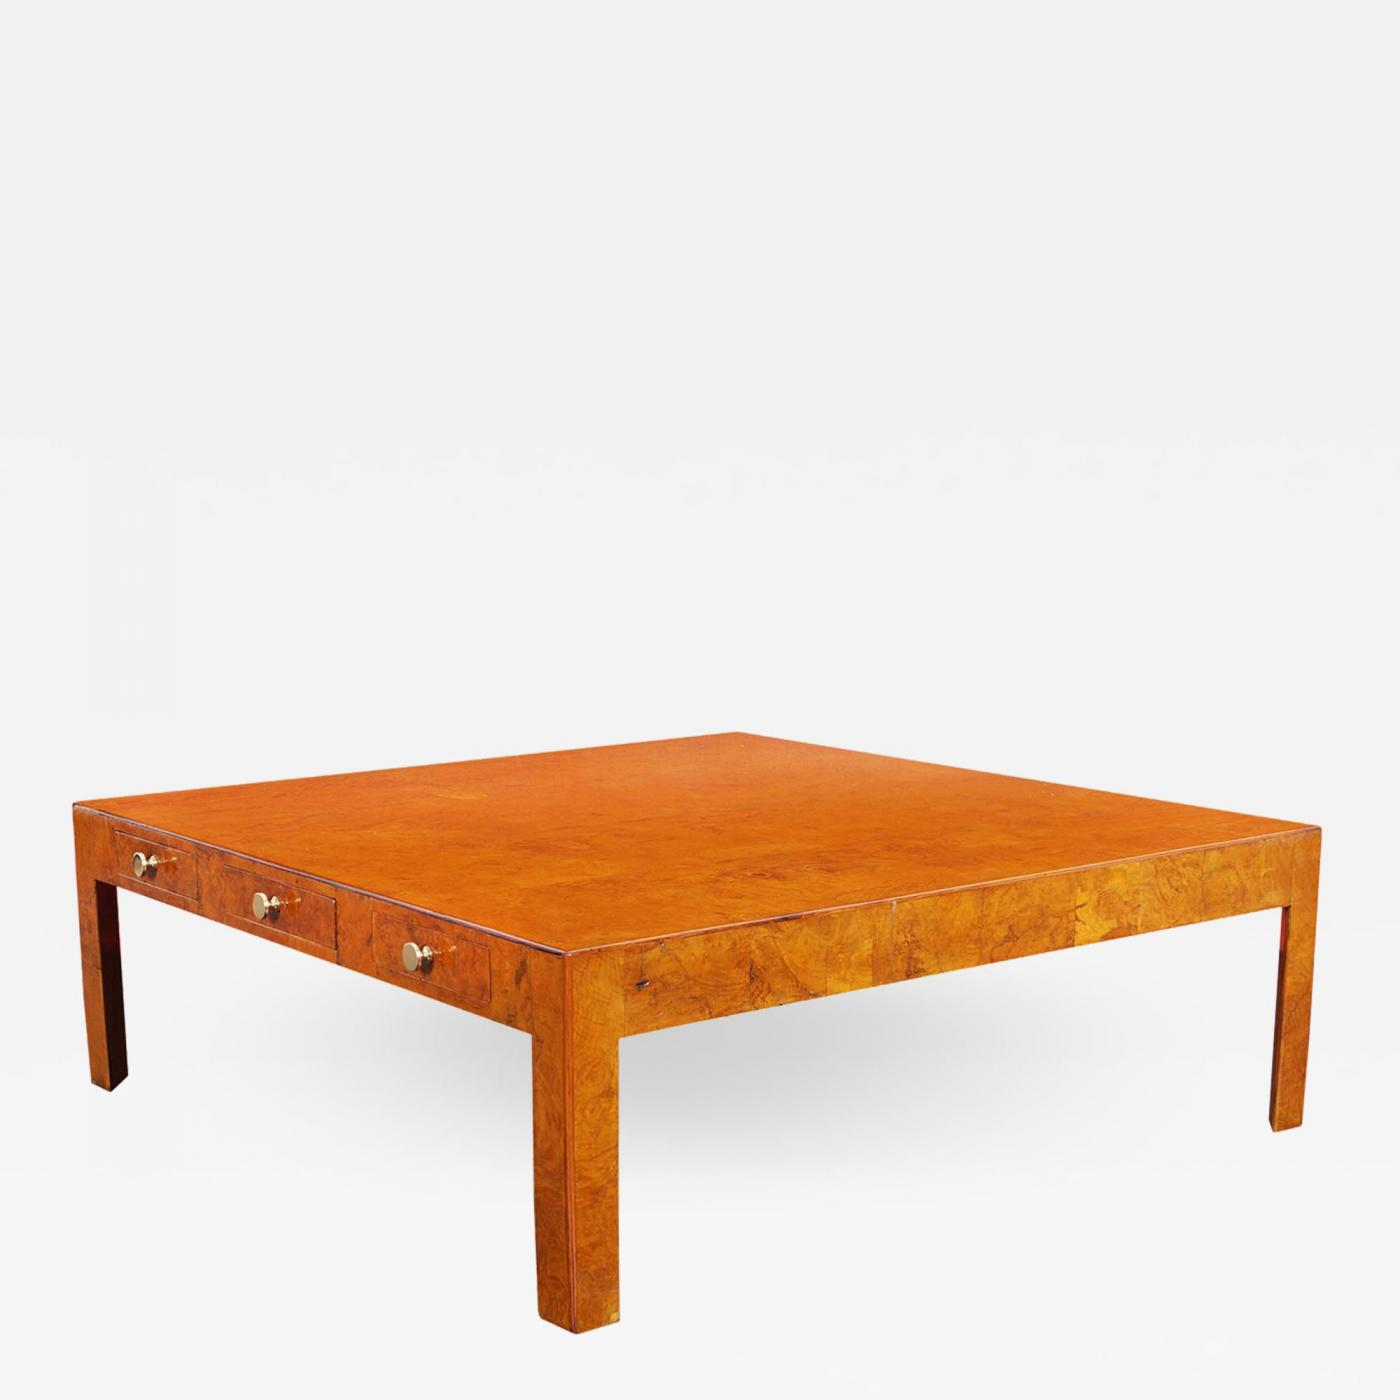 Captivating Listings / Furniture / Tables / Coffee Tables